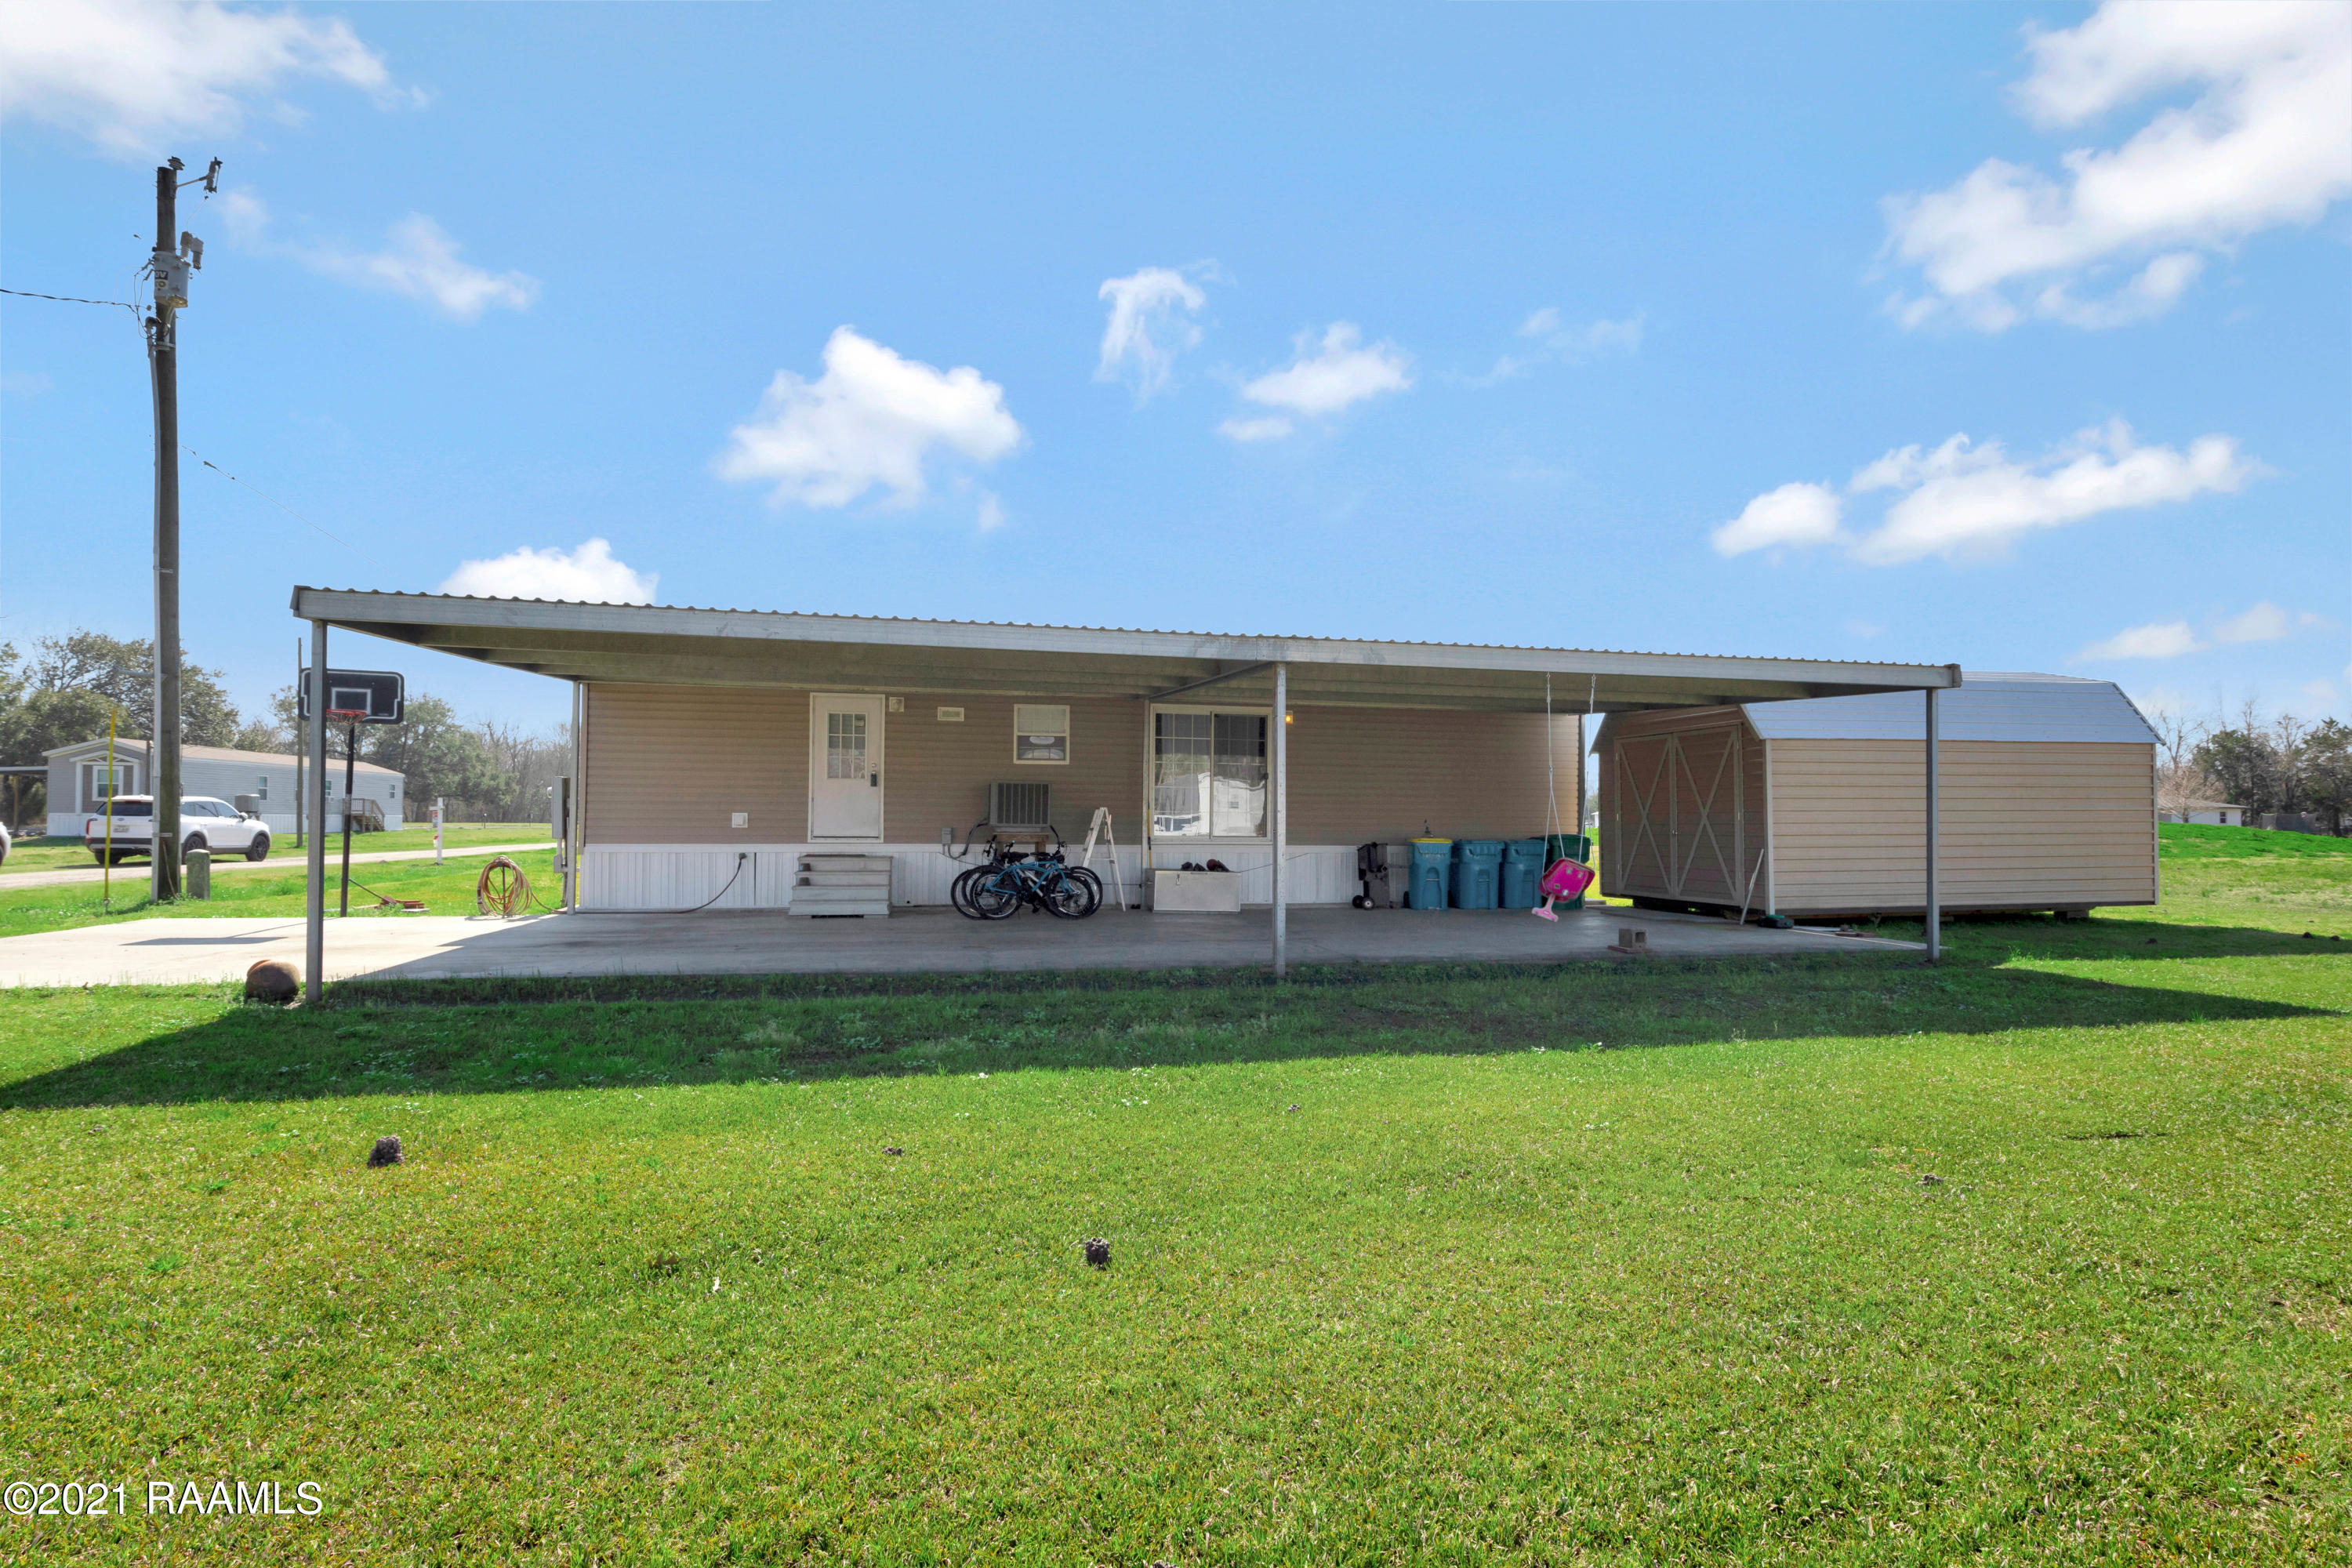 1141d Sam Champagne Road, Breaux Bridge, LA 70517 Photo #7